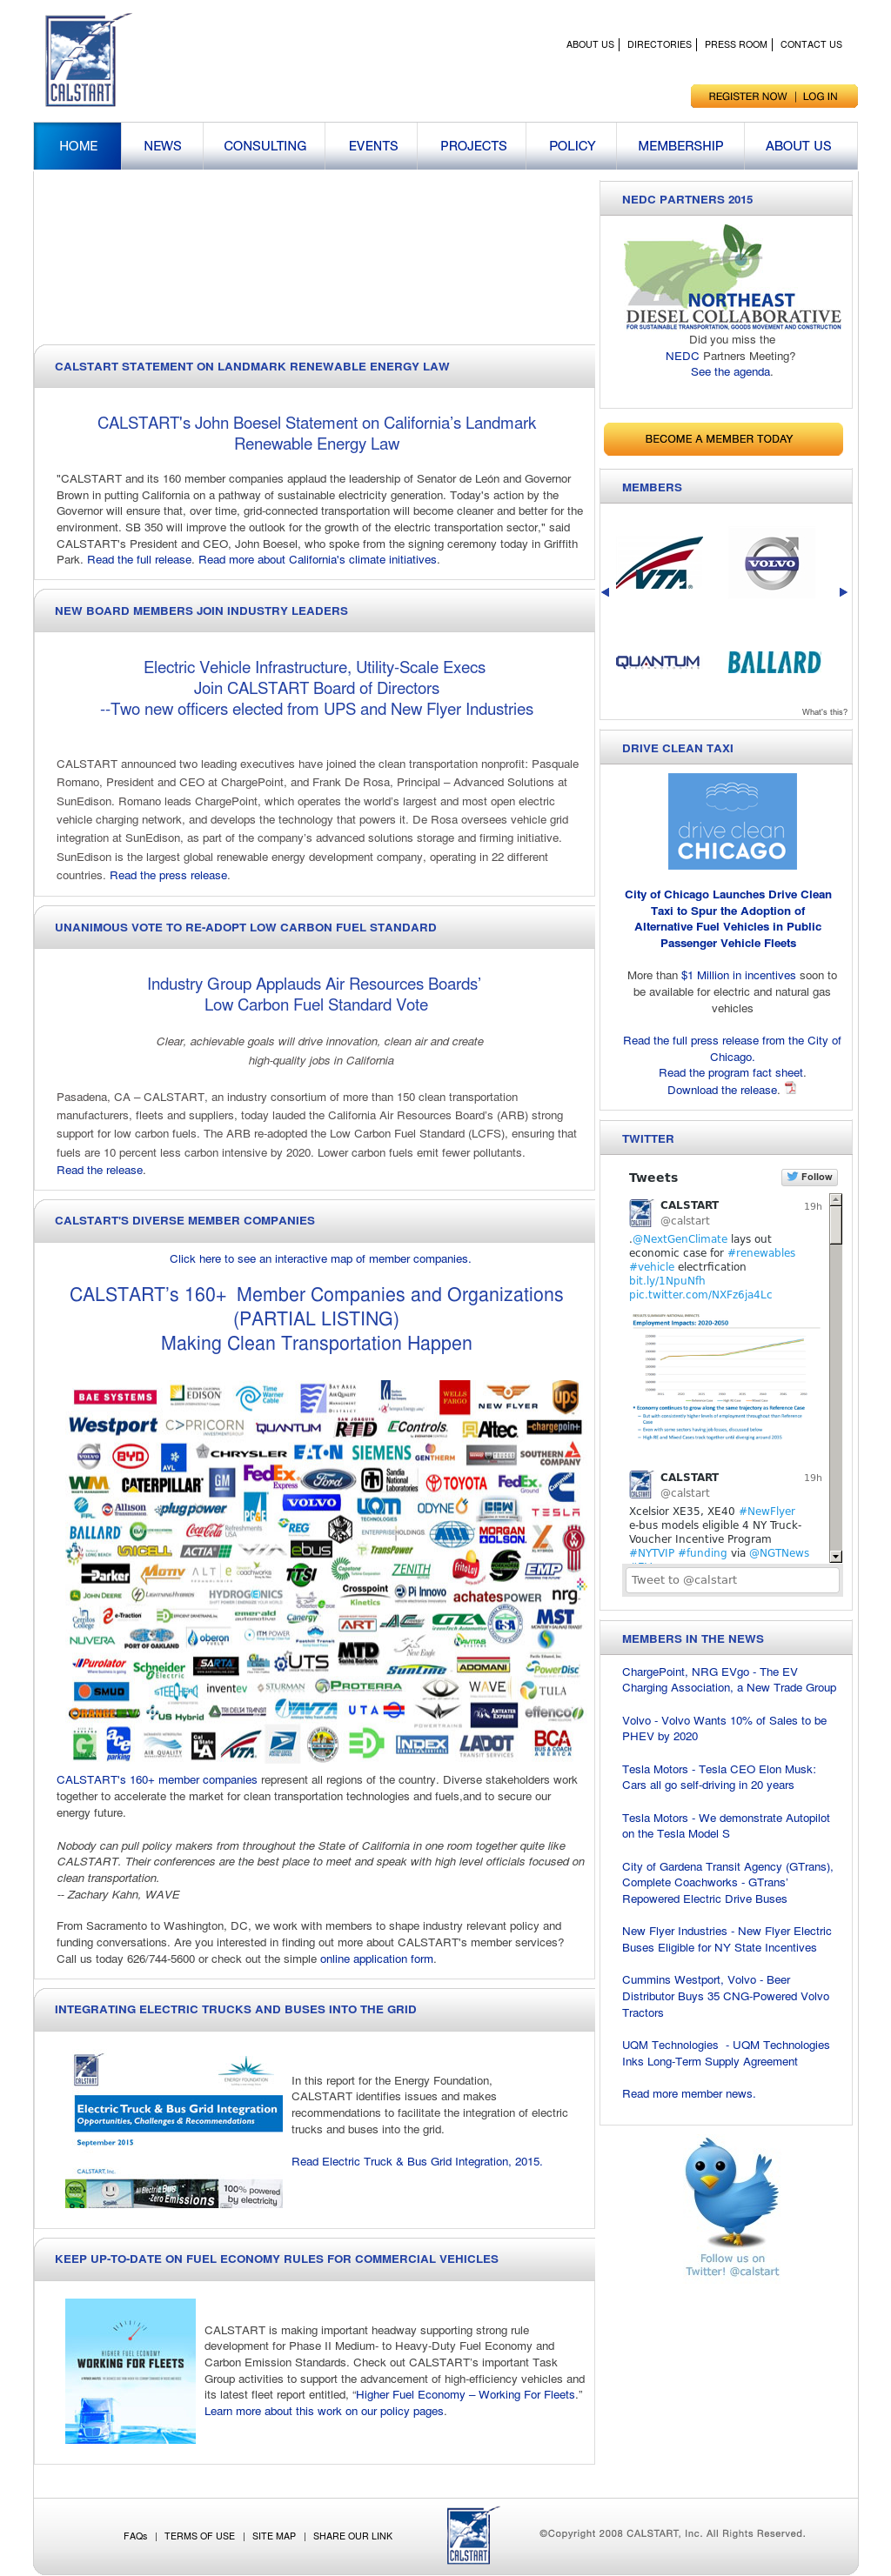 CALSTART Competitors, Revenue and Employees - Owler Company